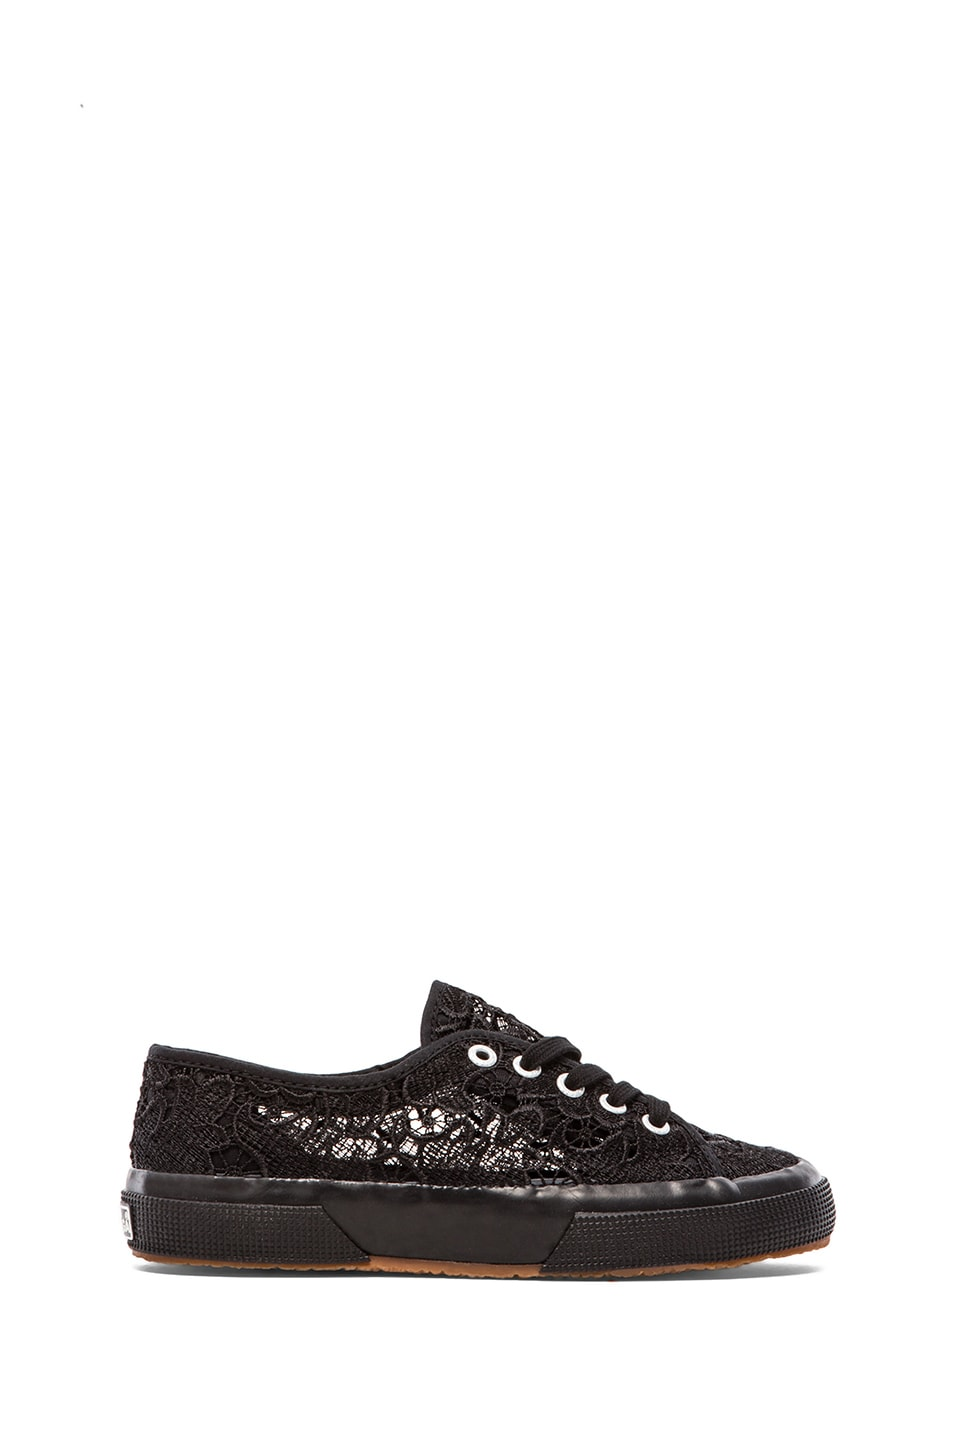 Superga Lace Sneakers in Black